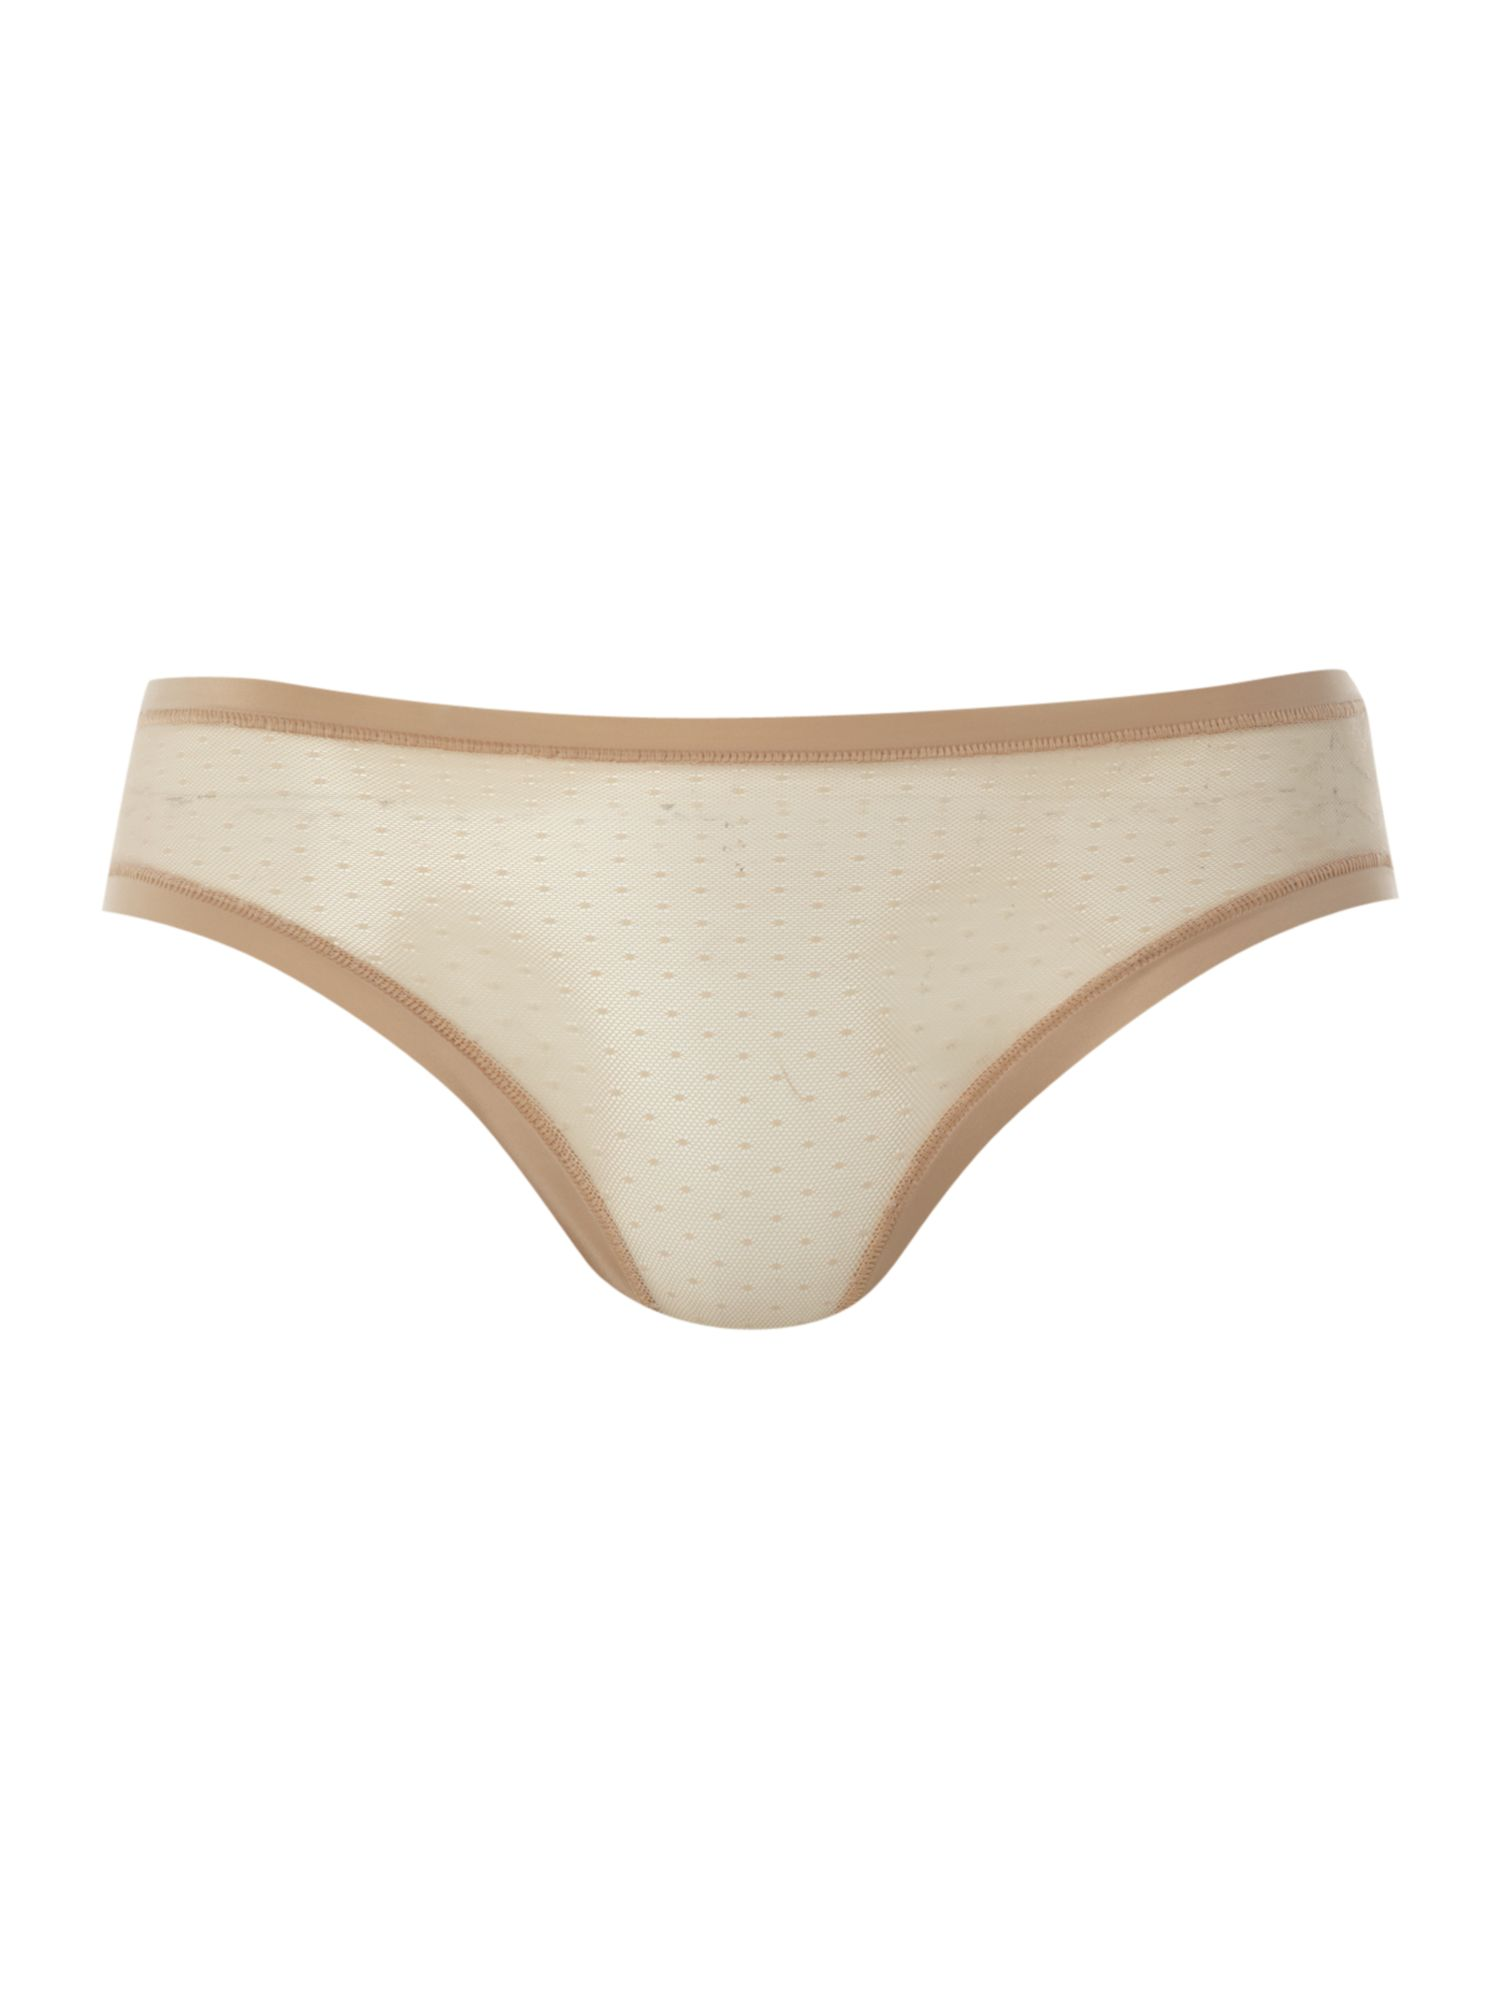 City chic invisible brief